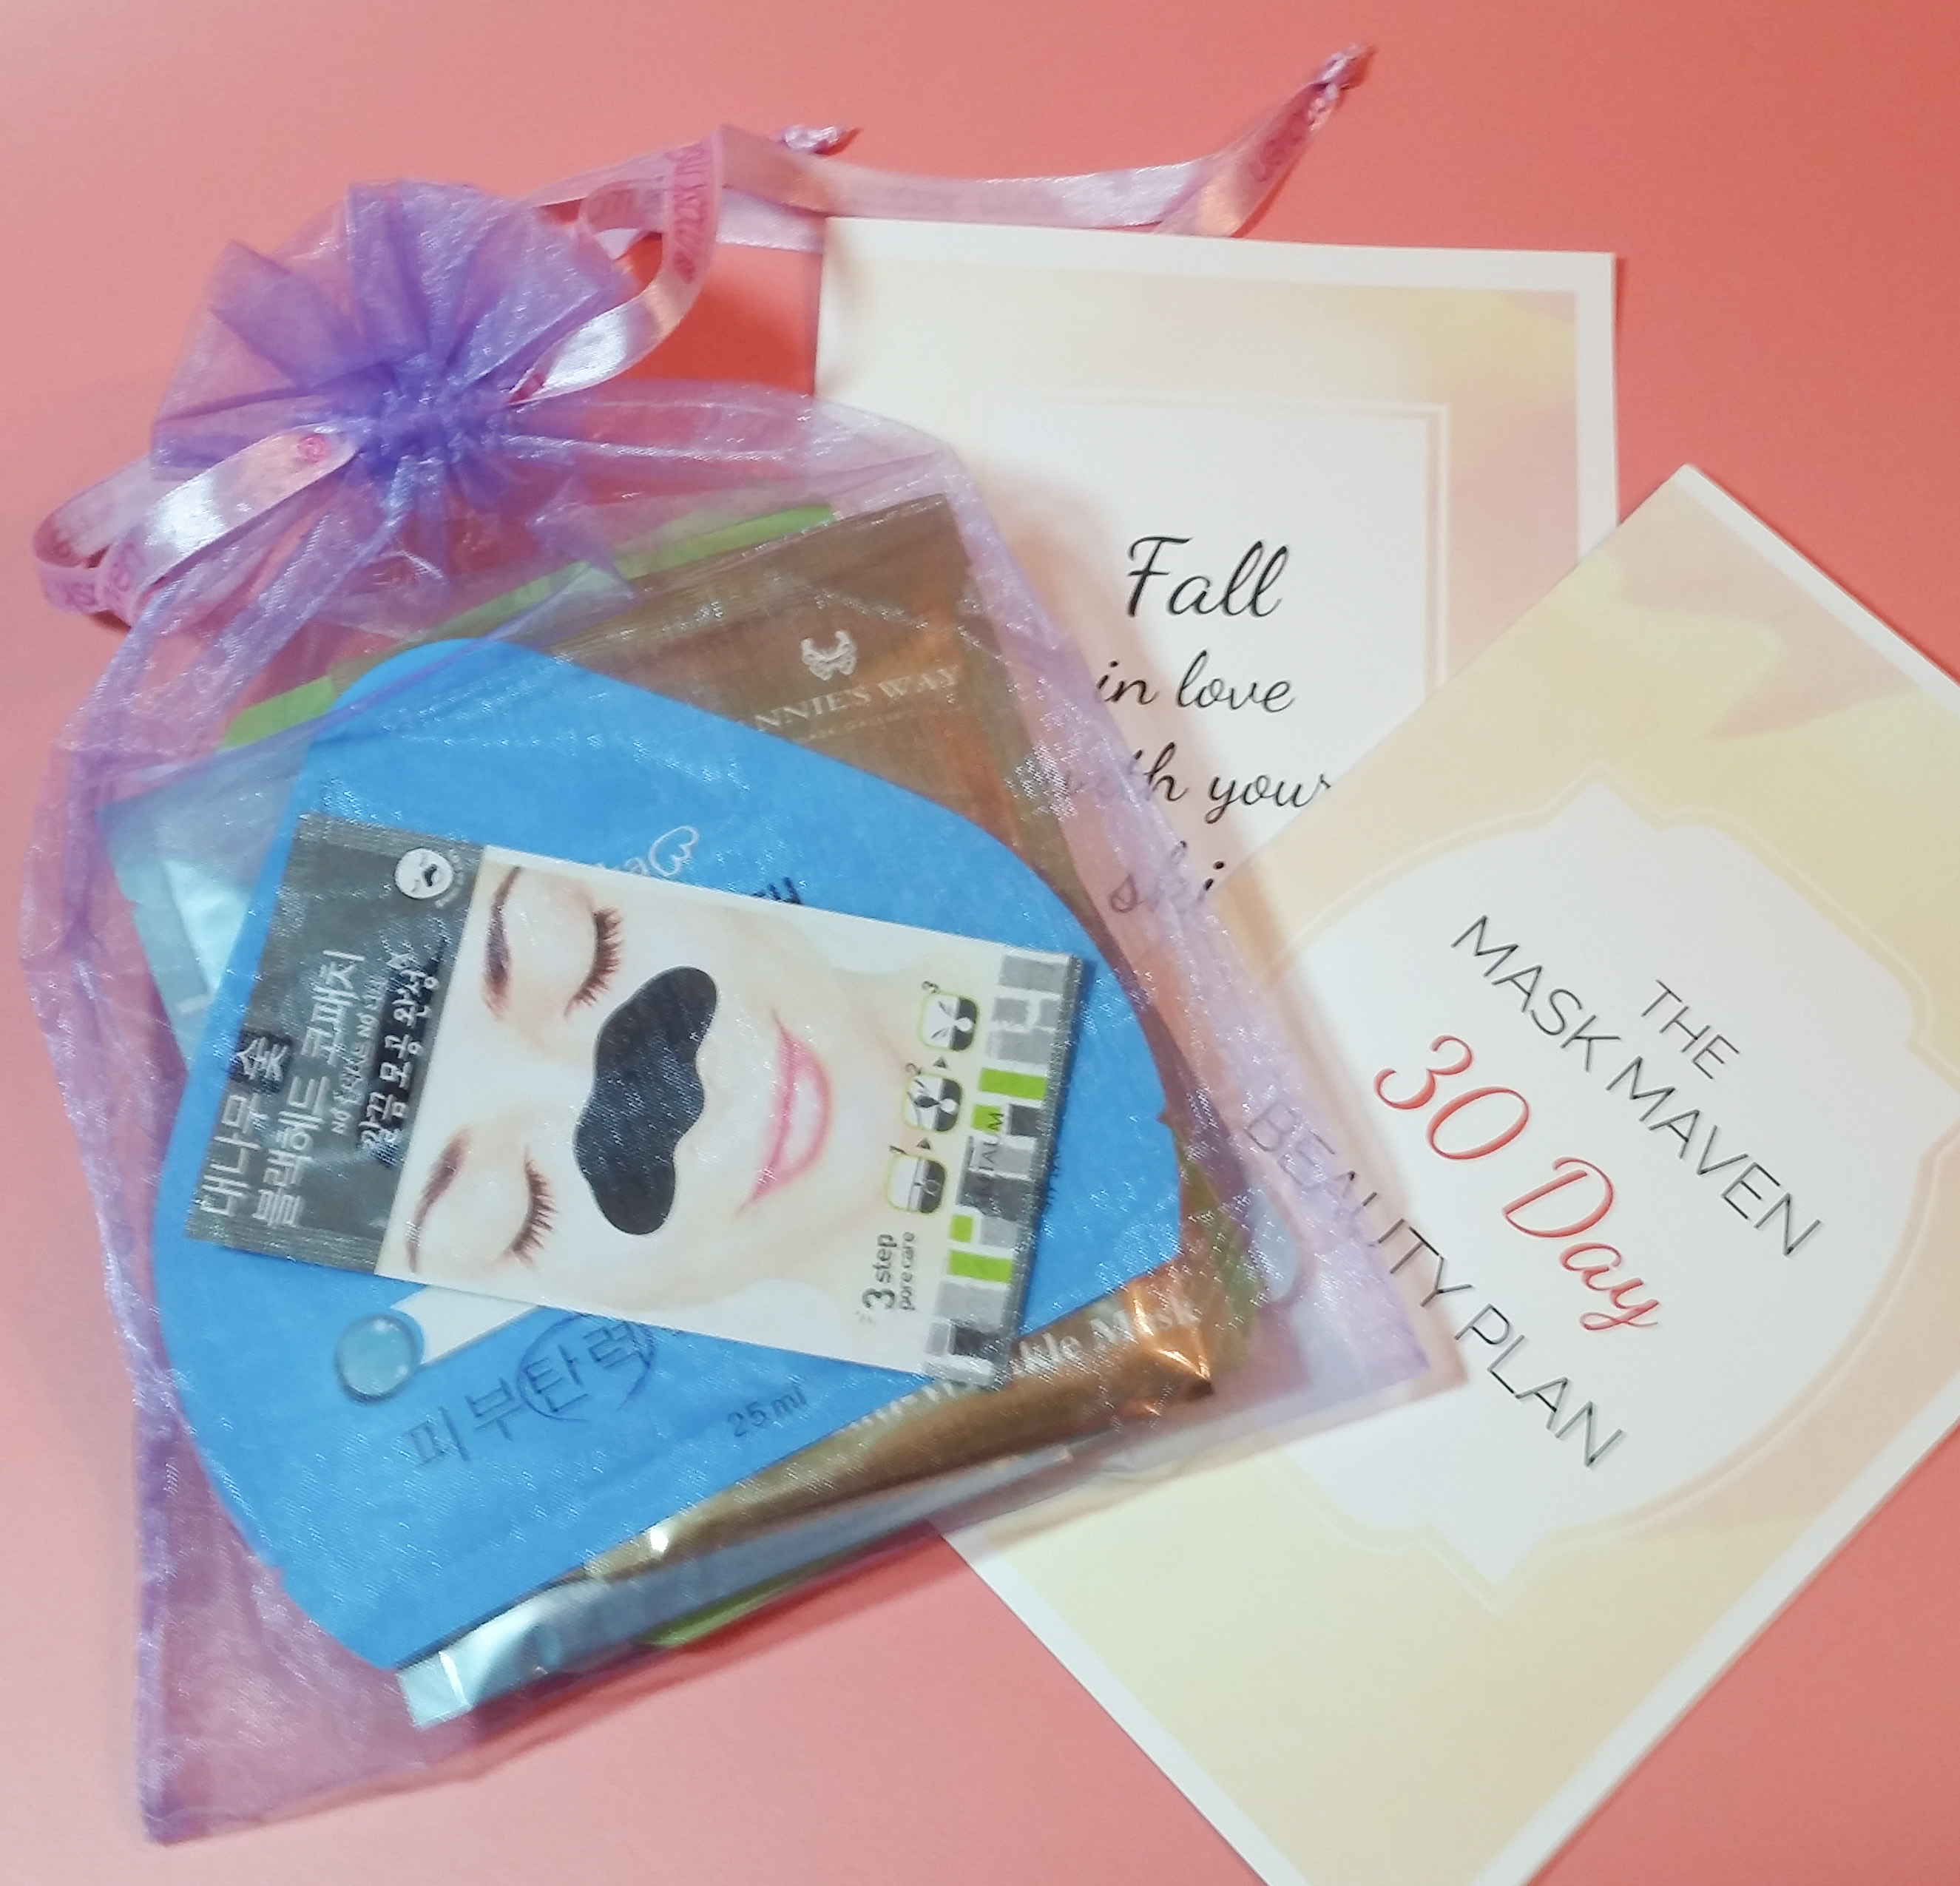 Beauteque Mask Maven November 2016 Subscription Box Review + Coupon